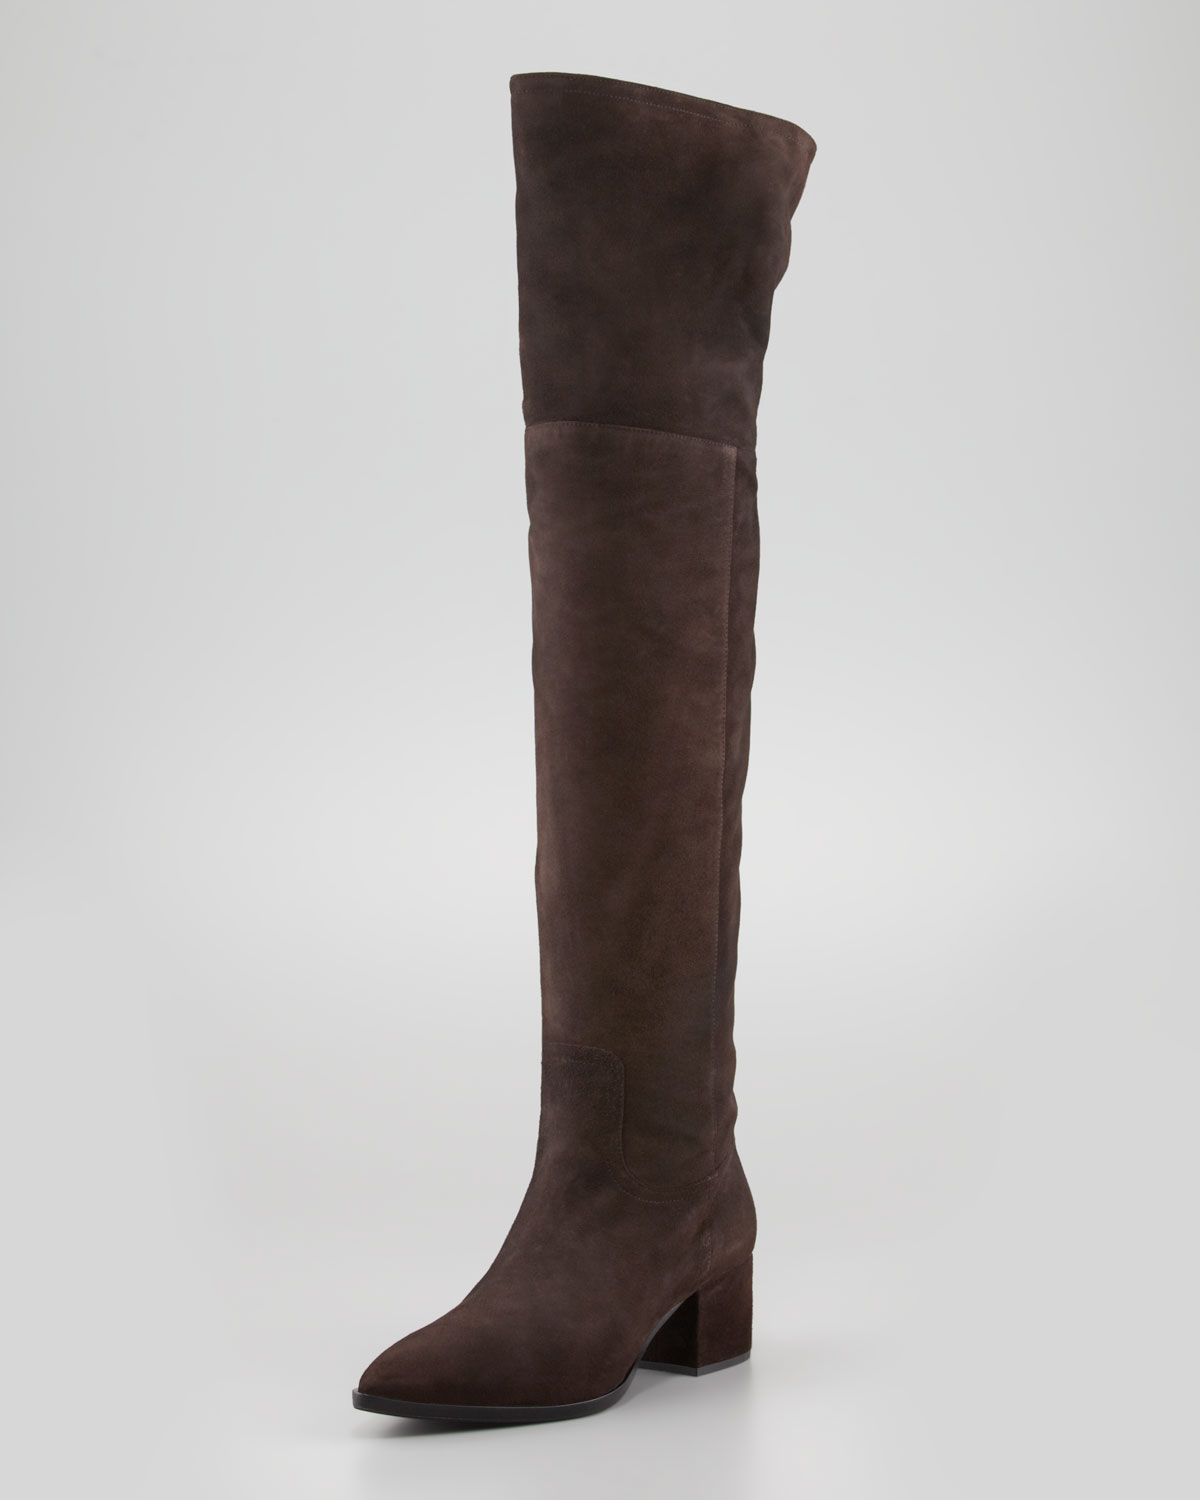 Brown Suede Over The Knee Boots Xipo8Qjh